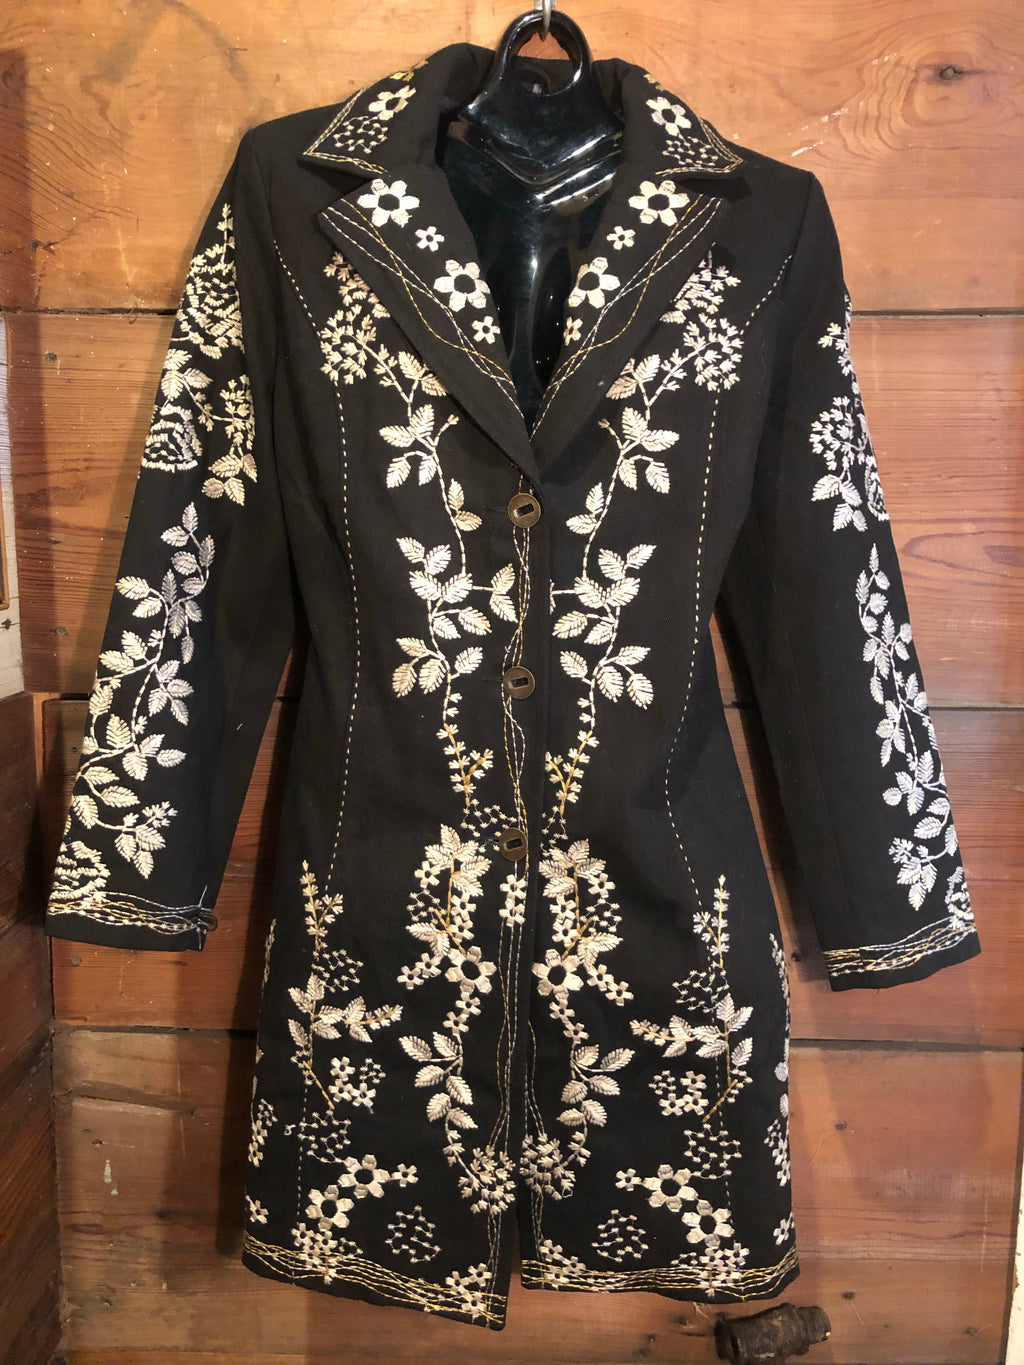 Black jacket with white embroidery